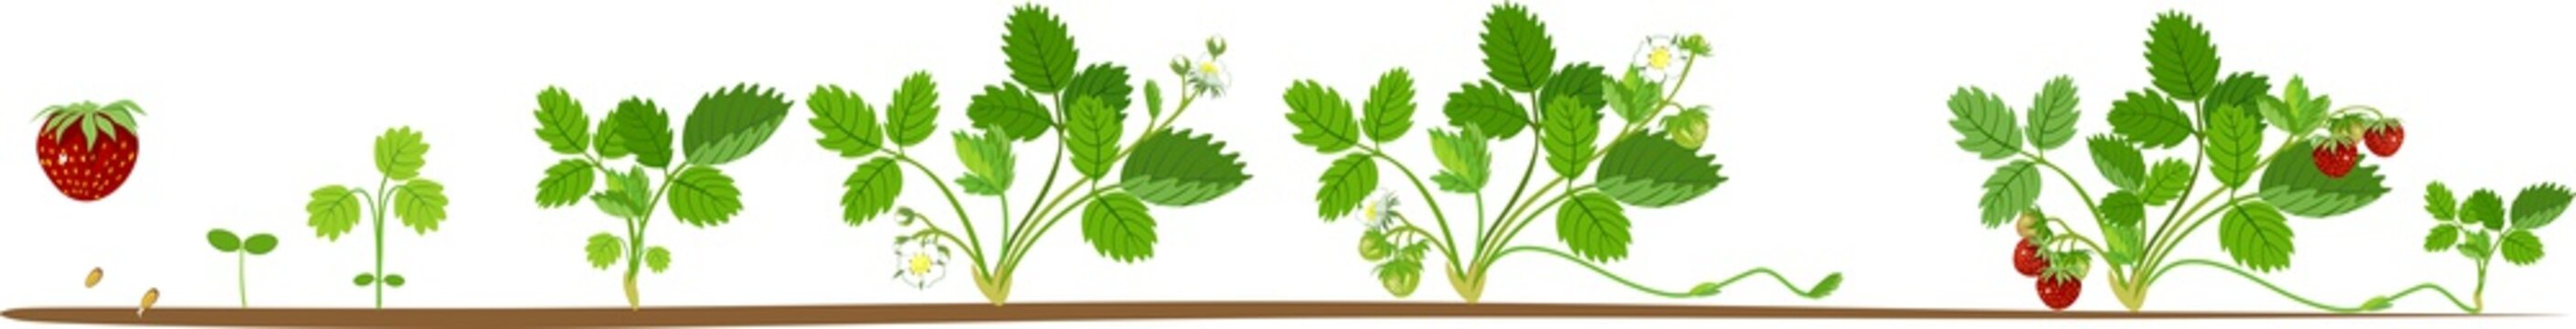 Life cycle of strawberry. Plant growth stage from seed to strawberry plant with berries